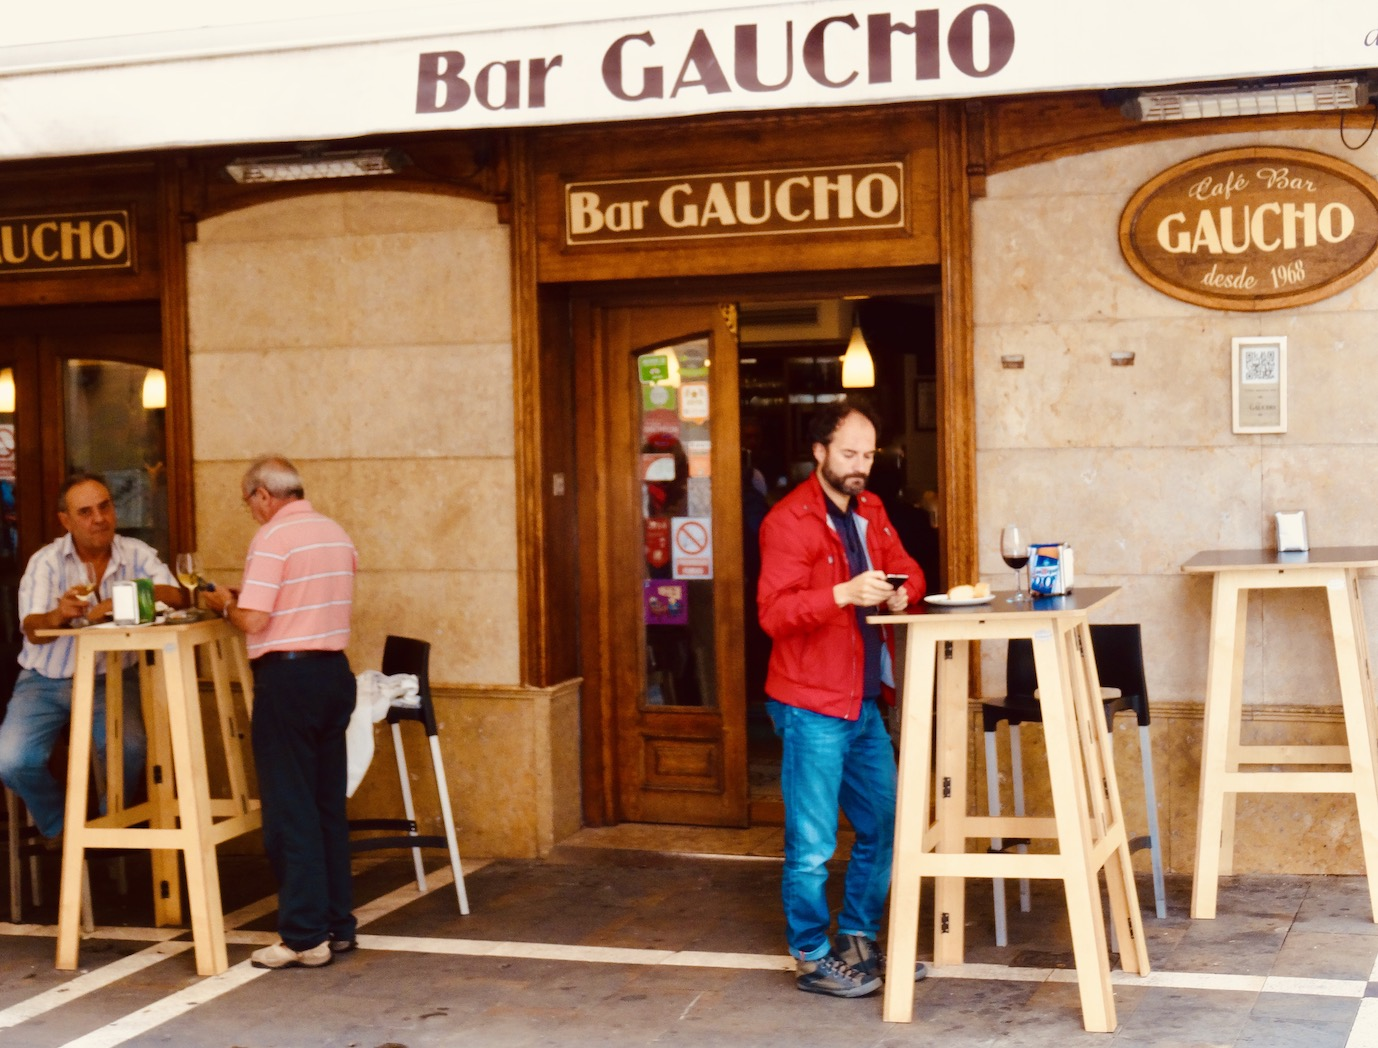 Bar Gaucho Pamplona Spain.